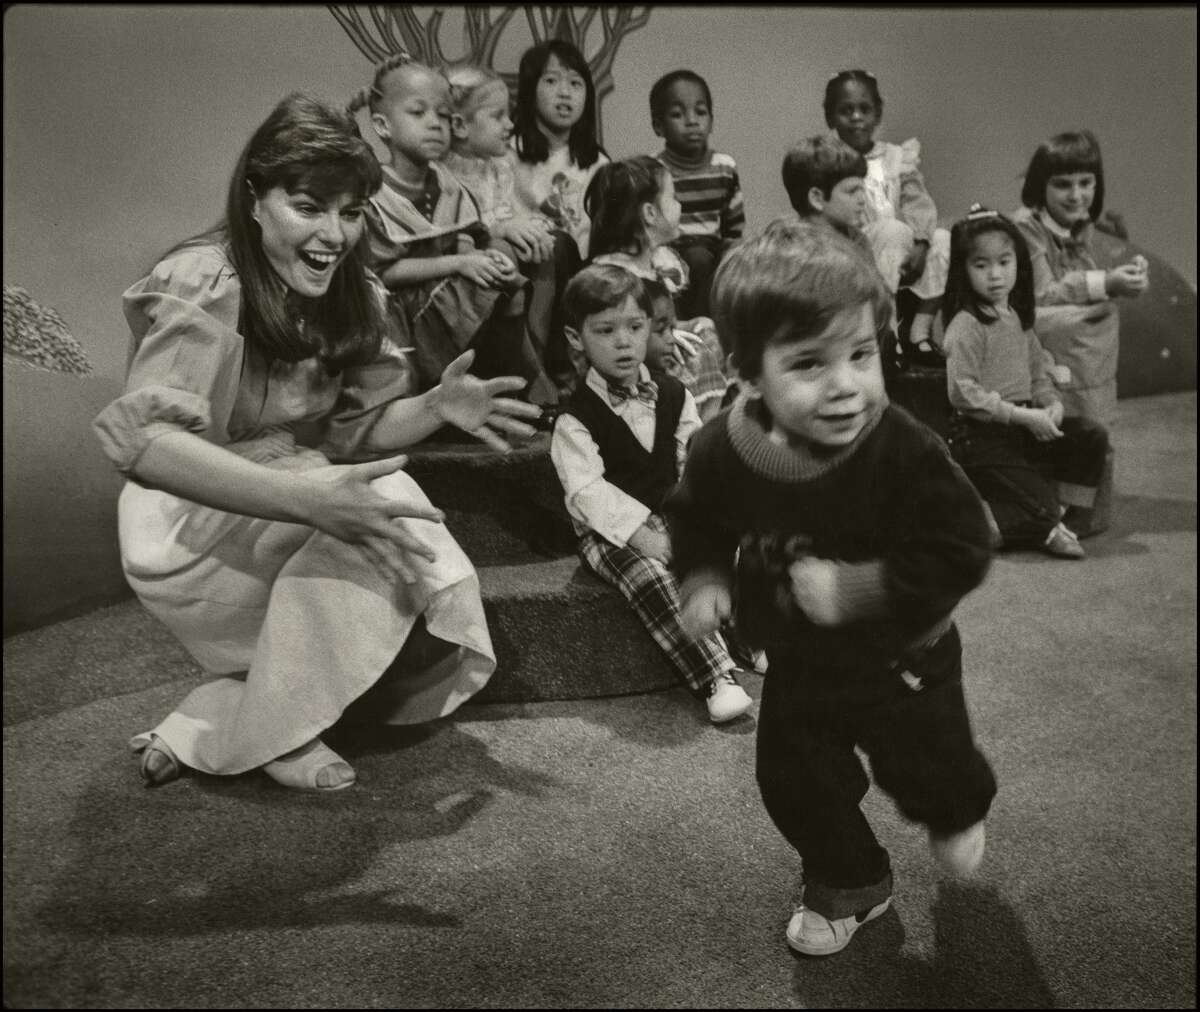 """Children's television host Nancy """"Miss Nancy"""" Besst laughs as a young boy runs past on the set of the TV show """"Romper Room"""" in Oakland in 1983."""